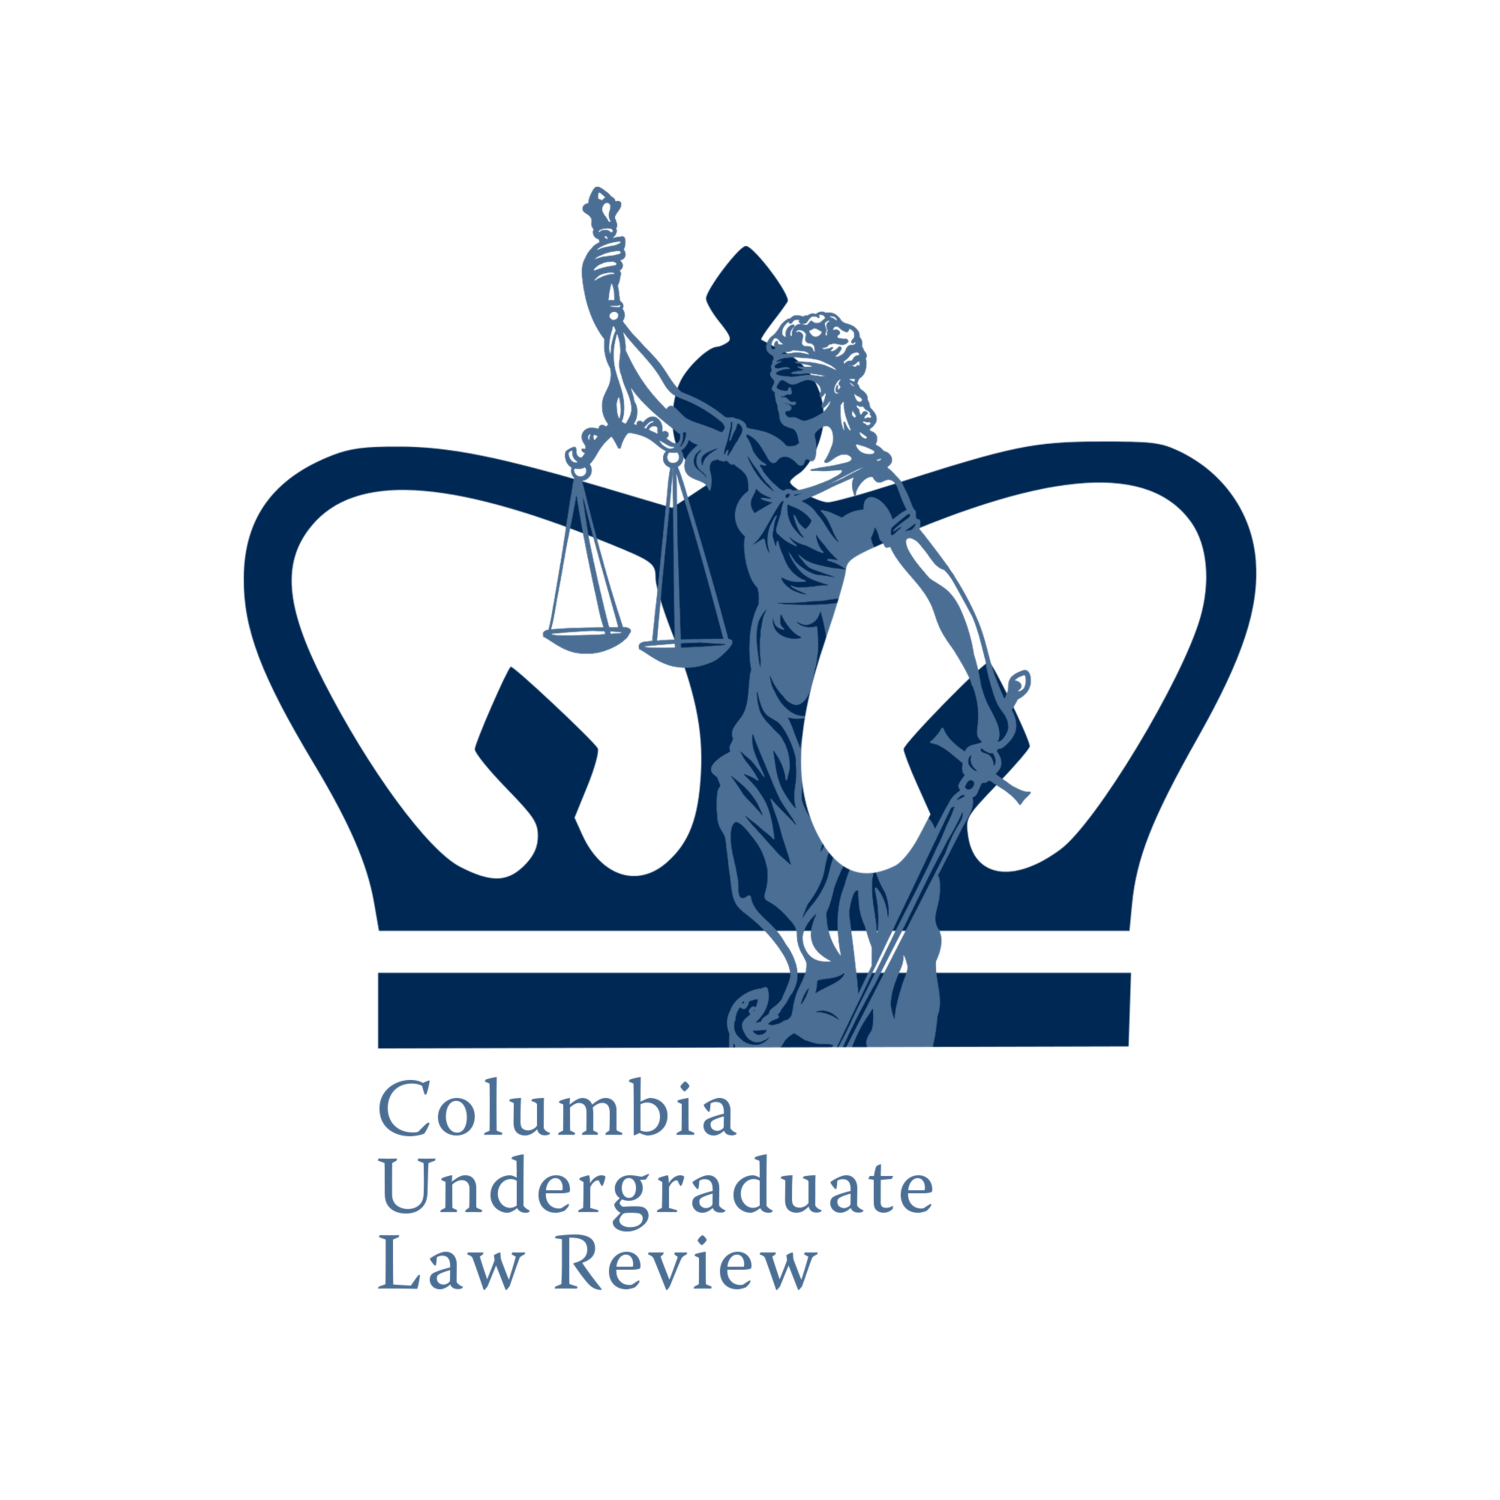 Columbia Undergraduate Law Review